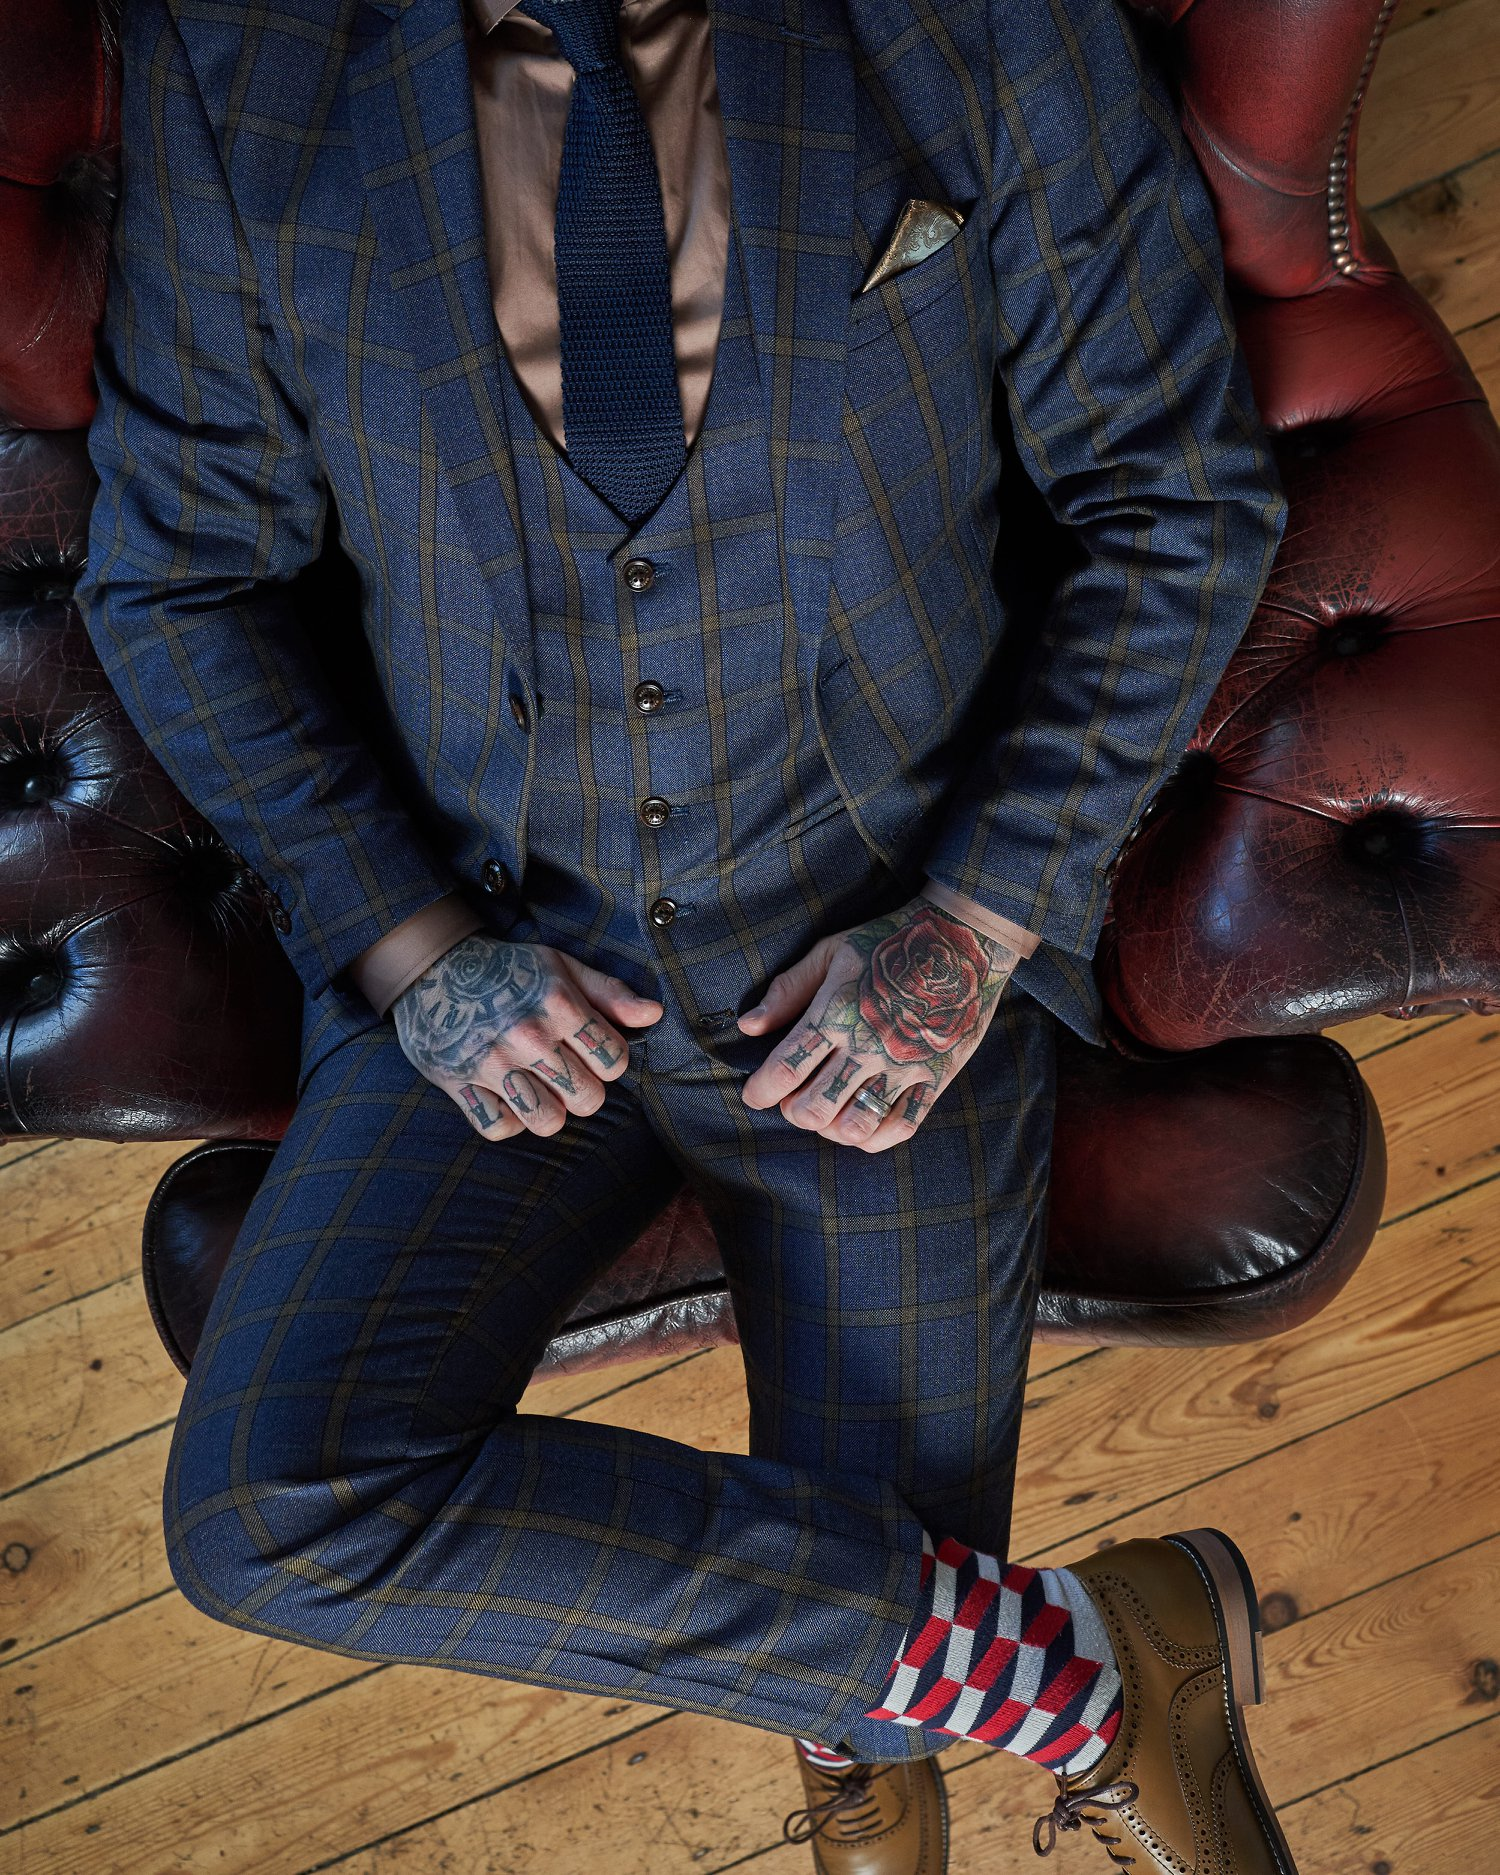 Maxster Debonair Menswear Clothing and Accessory Brand | North-East business opens second store in London's Spittalfields | Elle Blonde Luxury Lifestyle Destination Blog